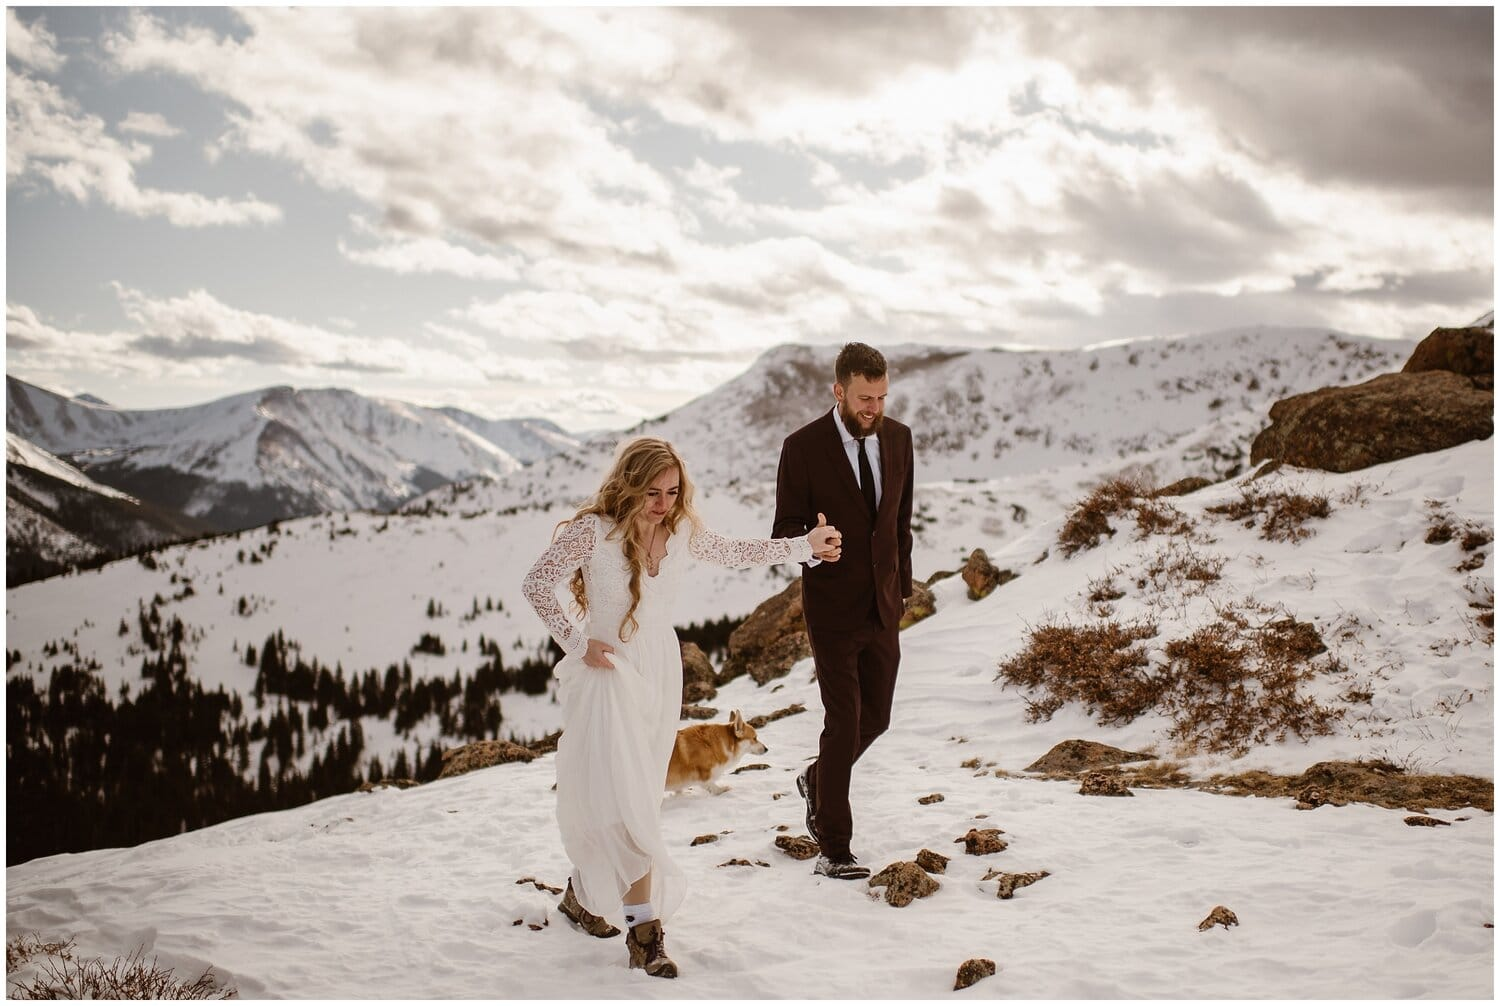 Bride and groom walk up the mountains in the snow on their wedding day.